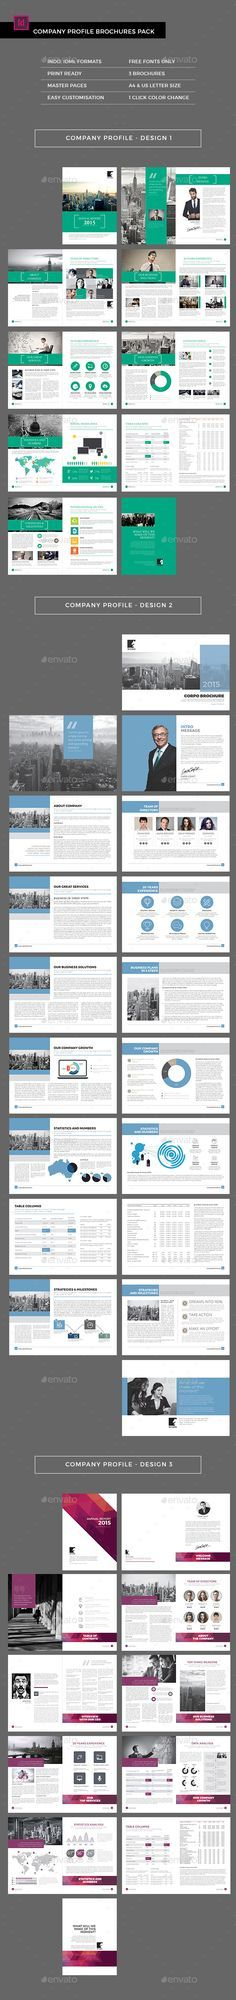 Annual Report (Powerpoint Templates) Annual reports, Template - powerpoint brochure template